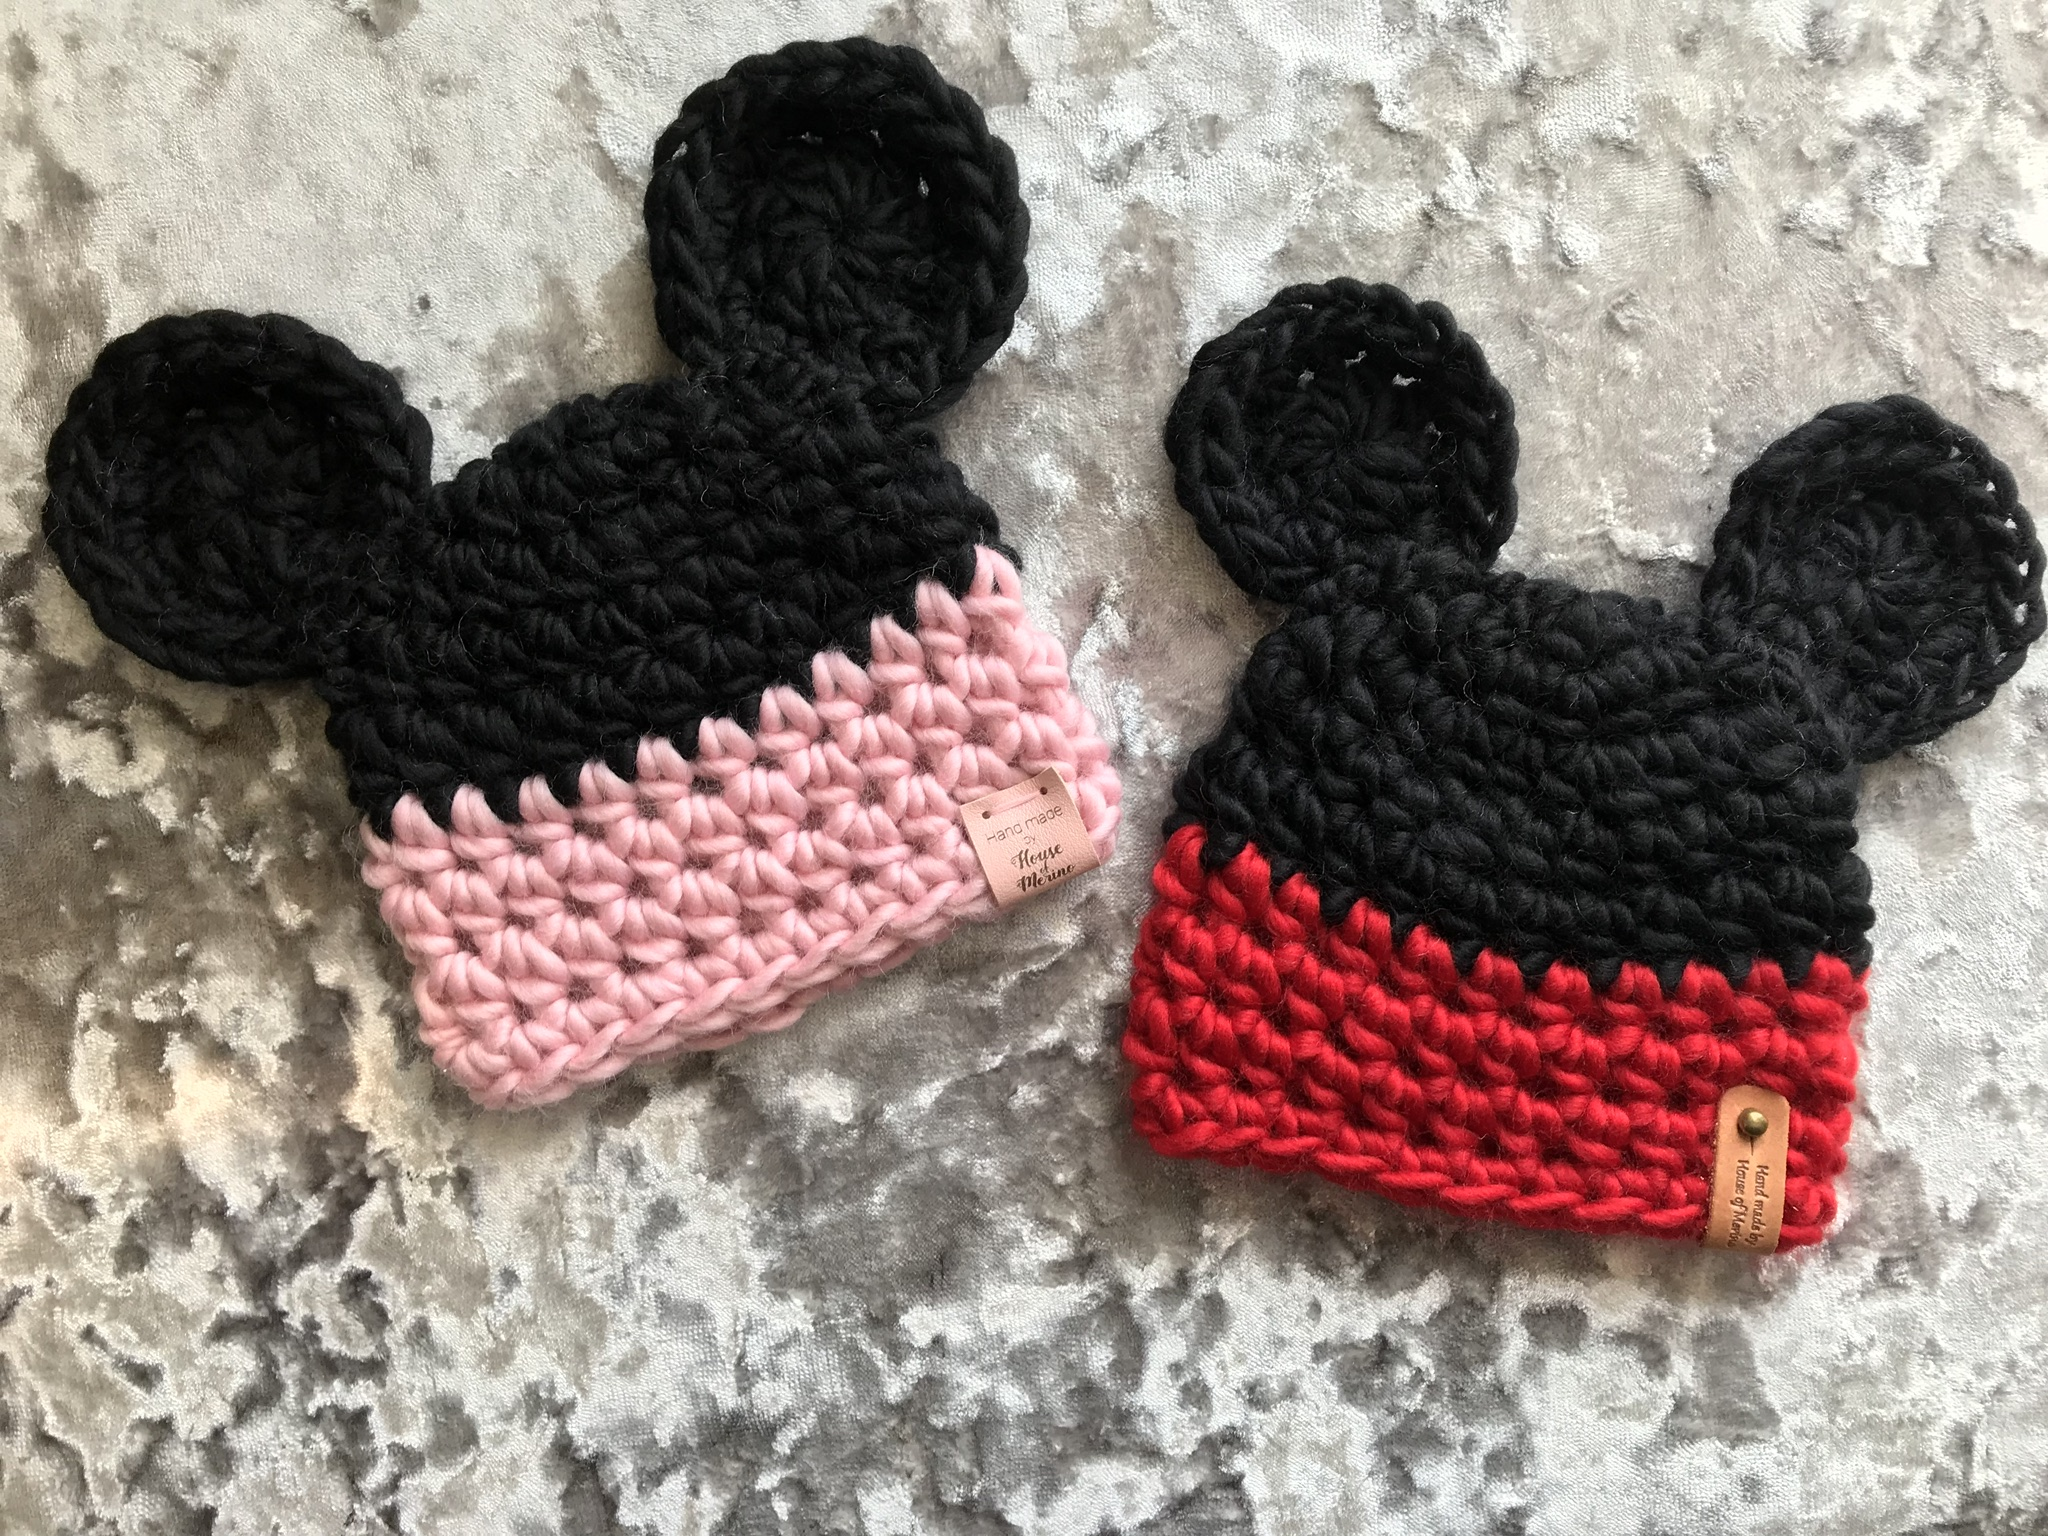 Merino beanie - Mickey and Minnie Mouse inspired